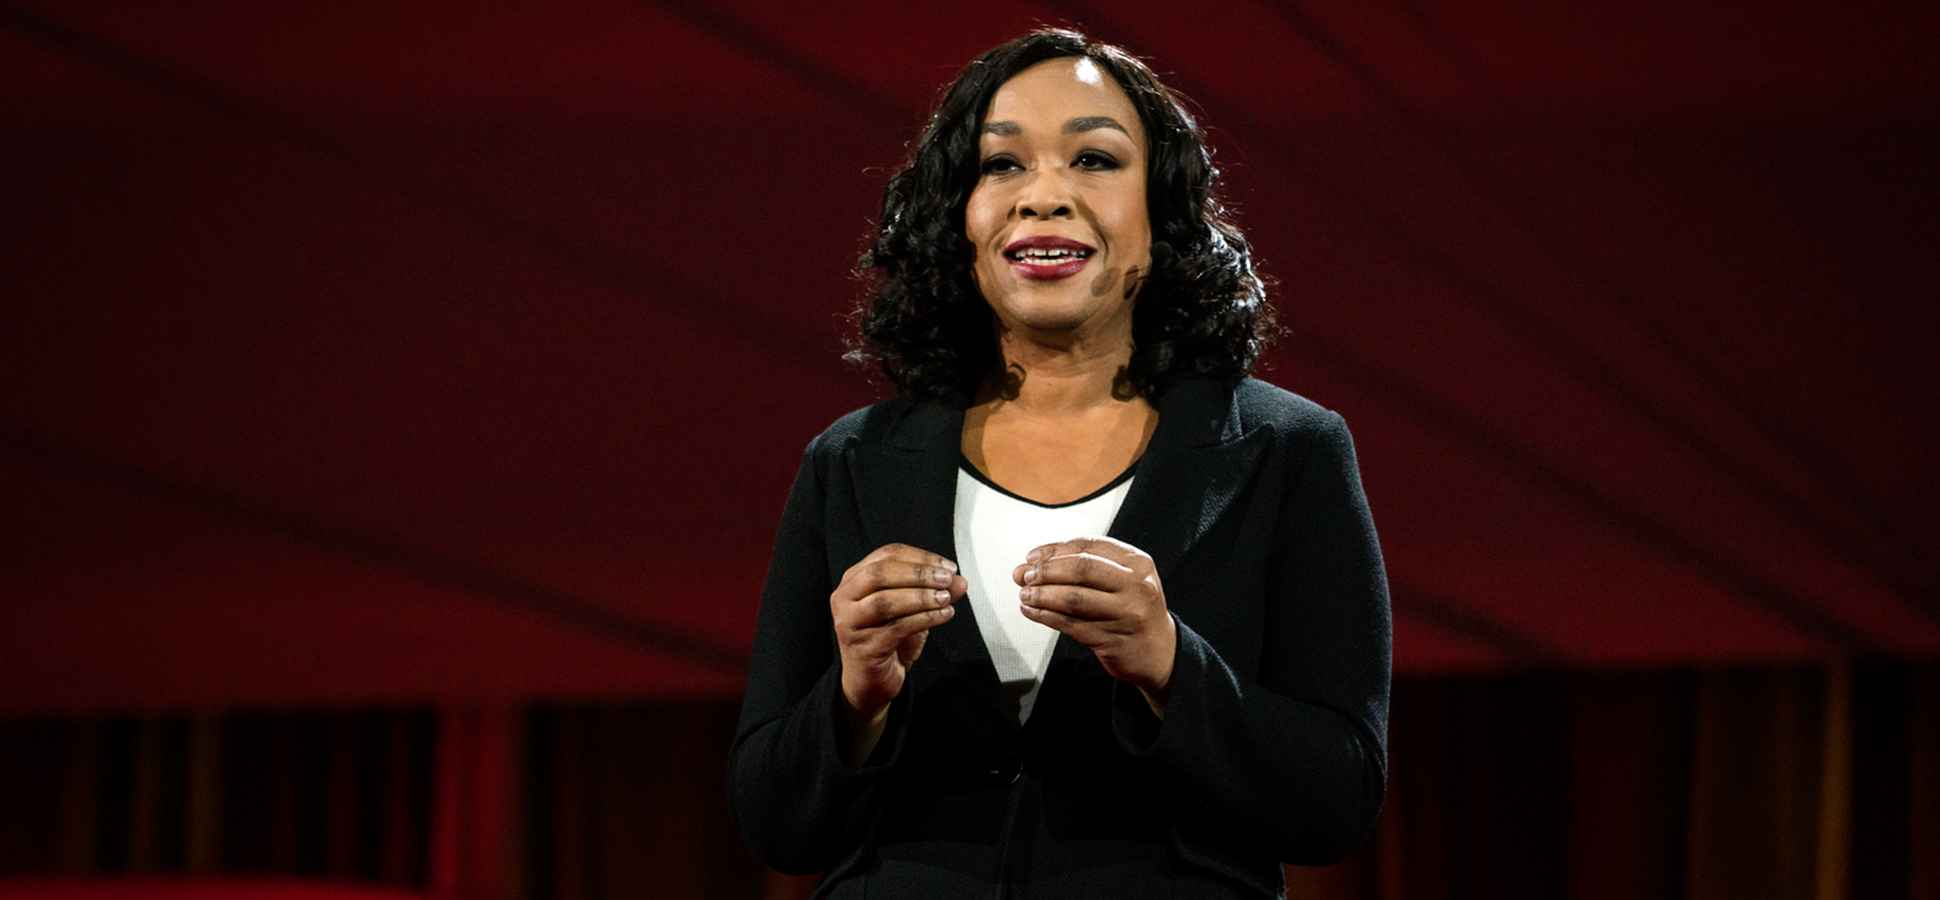 The Most Motivational TED Talks of 2016